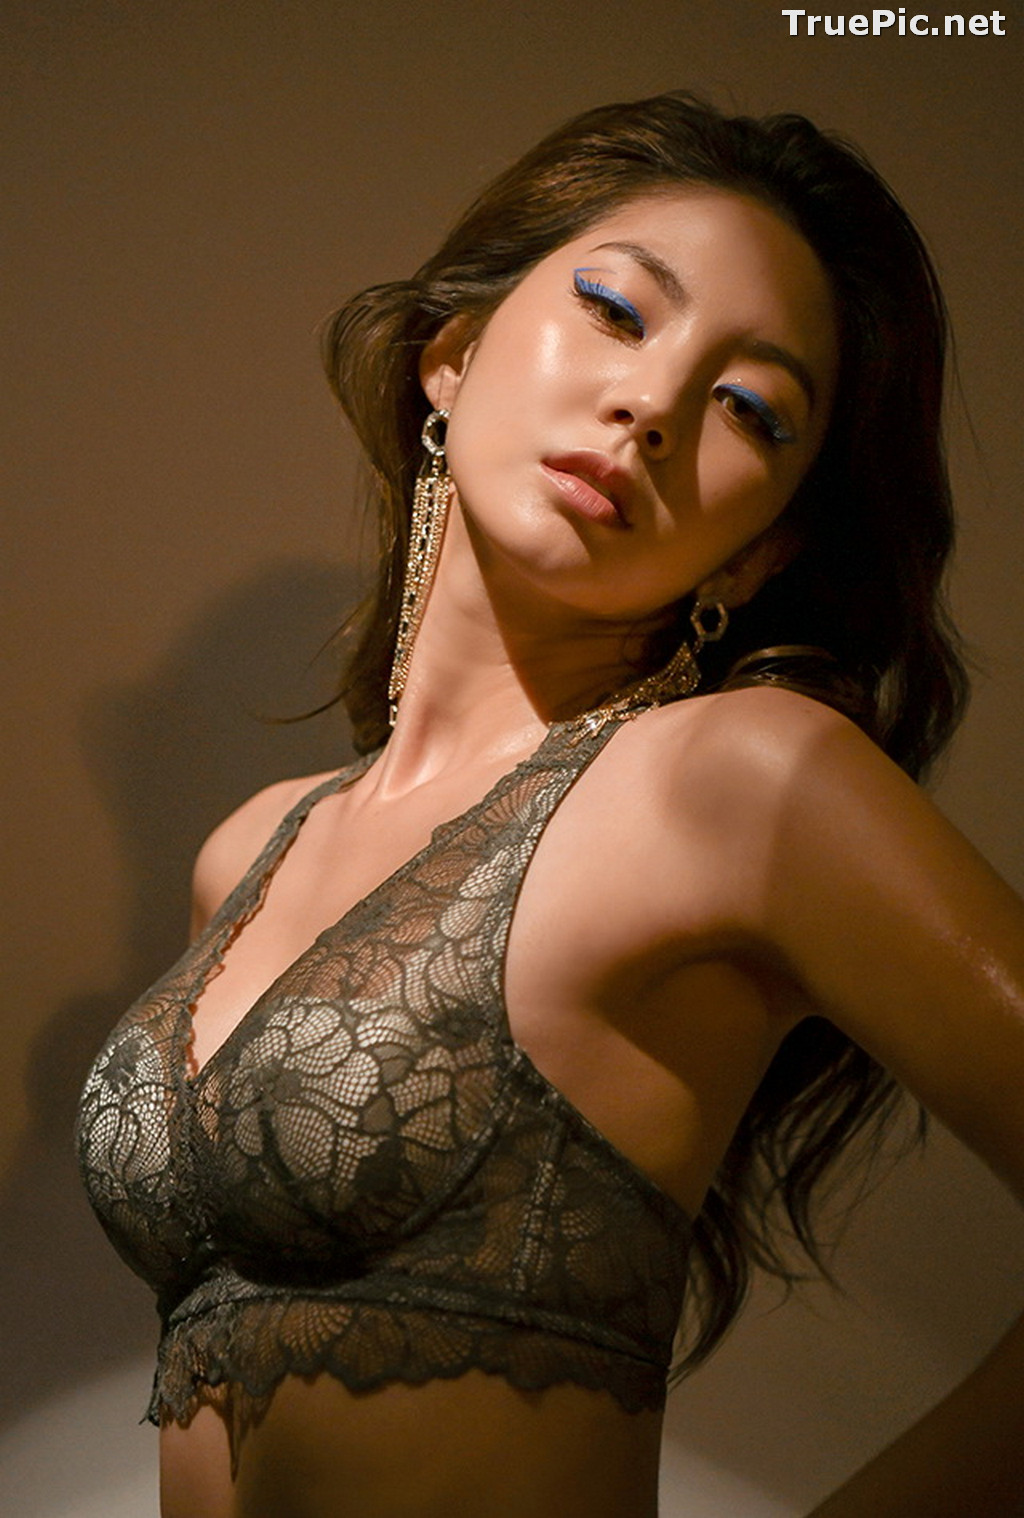 Image Korean Fashion Model - Lee Chae Eun - Soft Brown Lingerie - TruePic.net - Picture-10